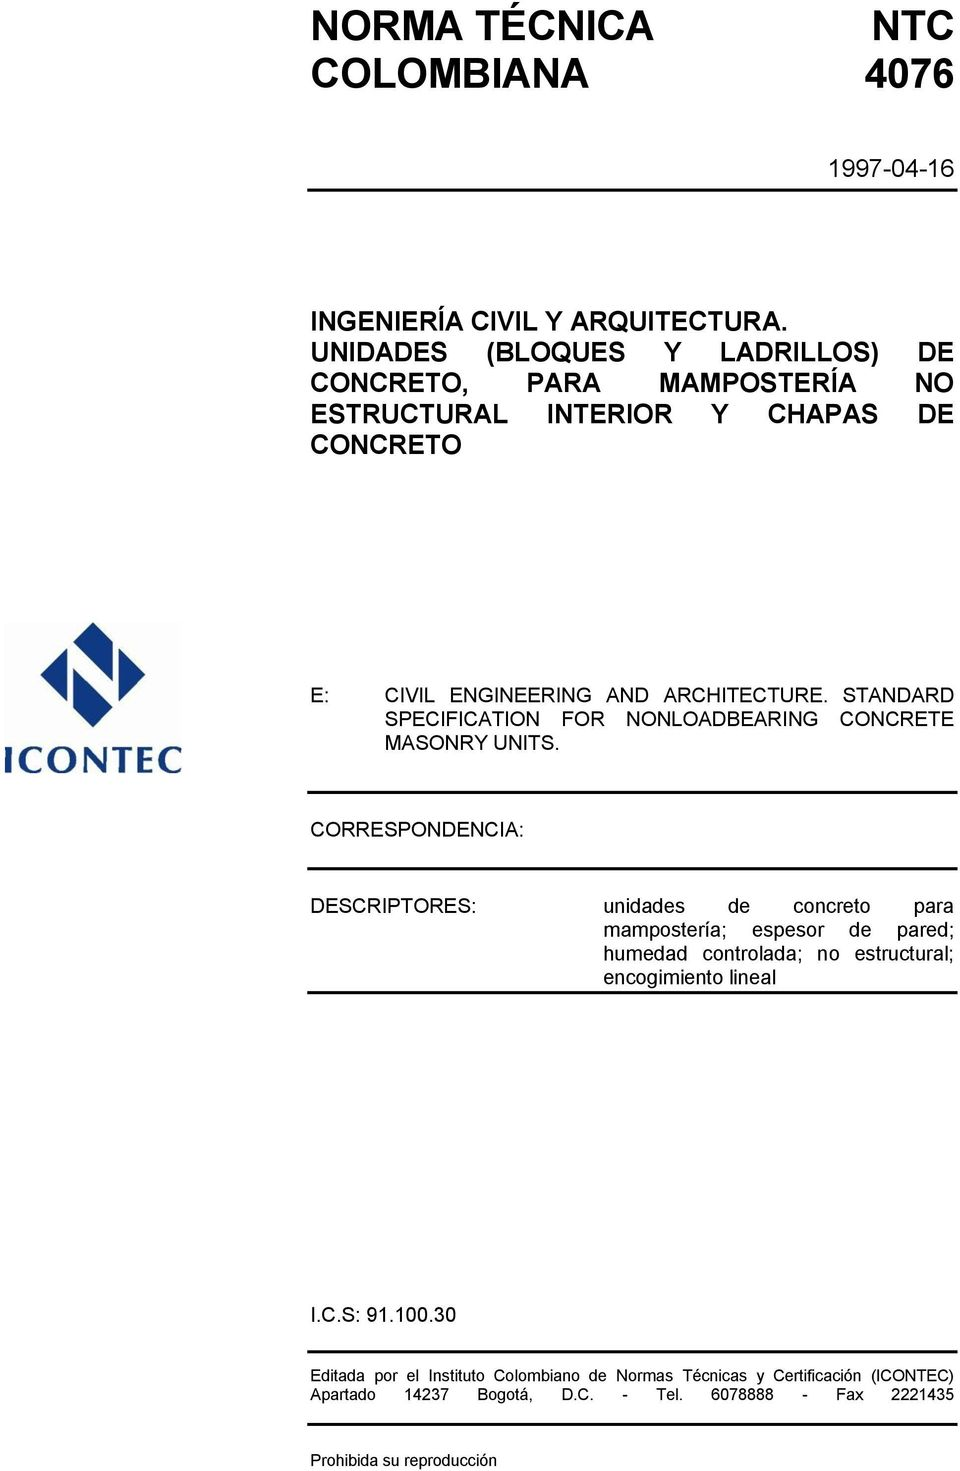 STANDARD SPECIFICATION FOR NONLOADBEARING CONCRETE MASONRY UNITS.